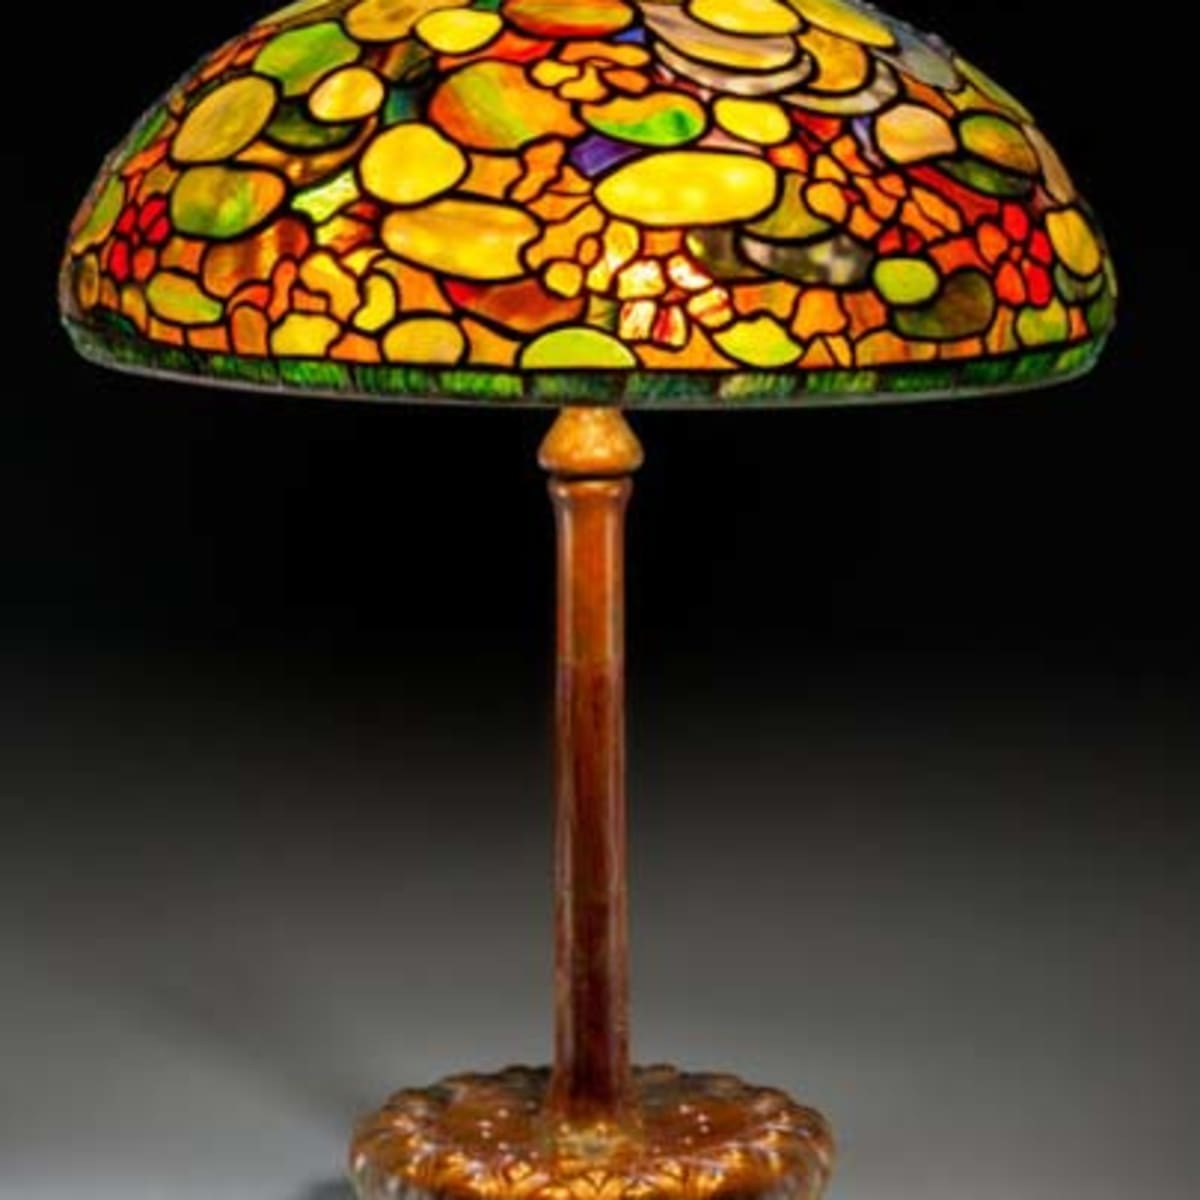 Tiffany Lamps How To Tell Real From Fake Antique Trader